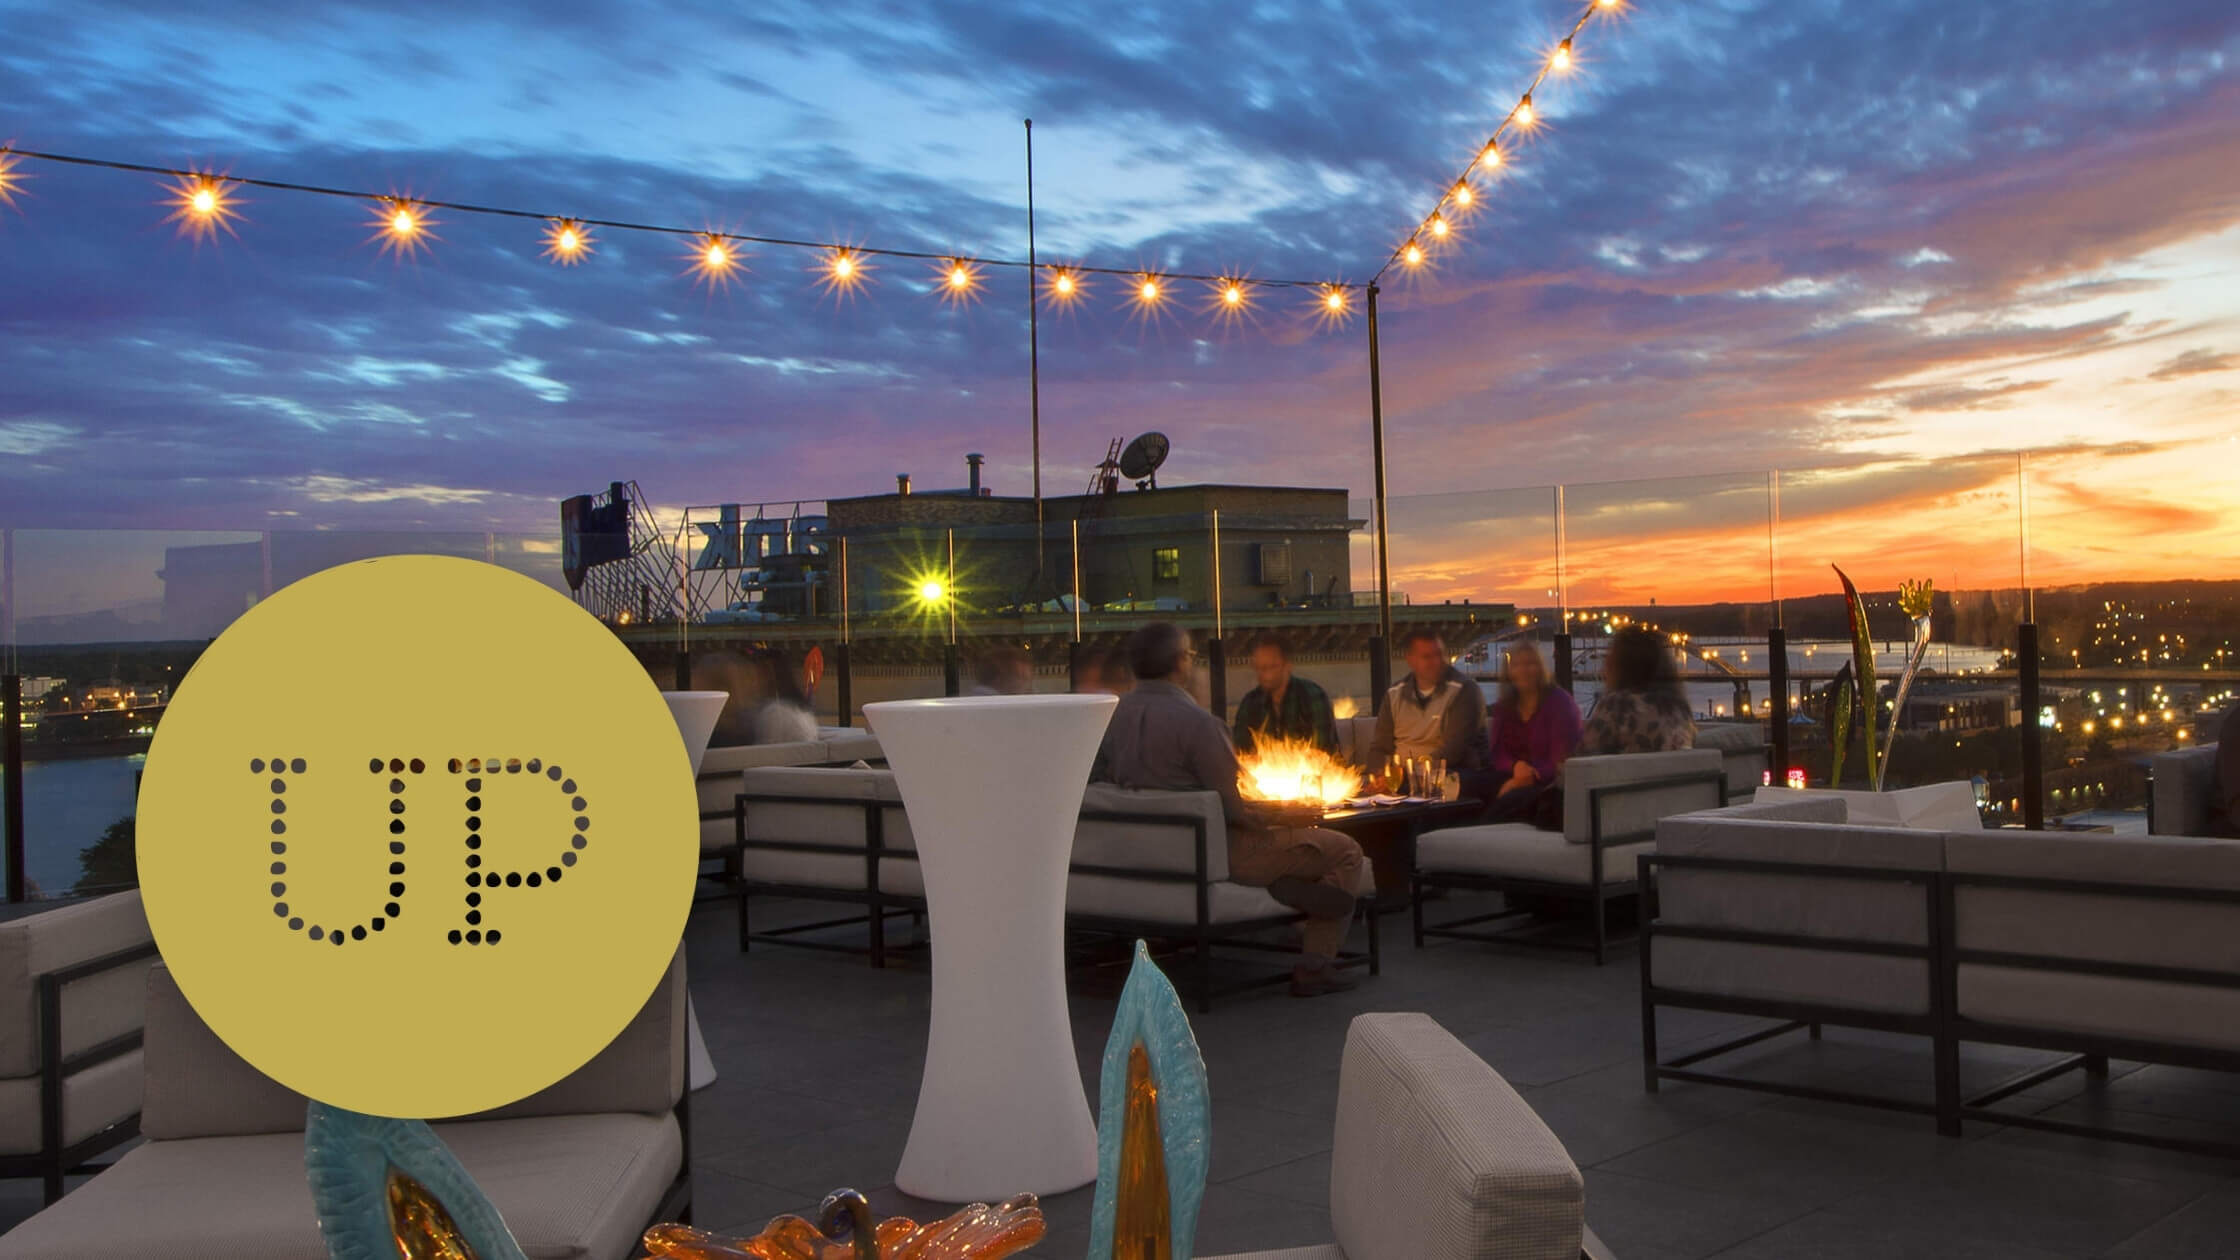 Up skybar commercial hotel blackhawk Davenport, Iowa FitQuest brand strategy and marketing